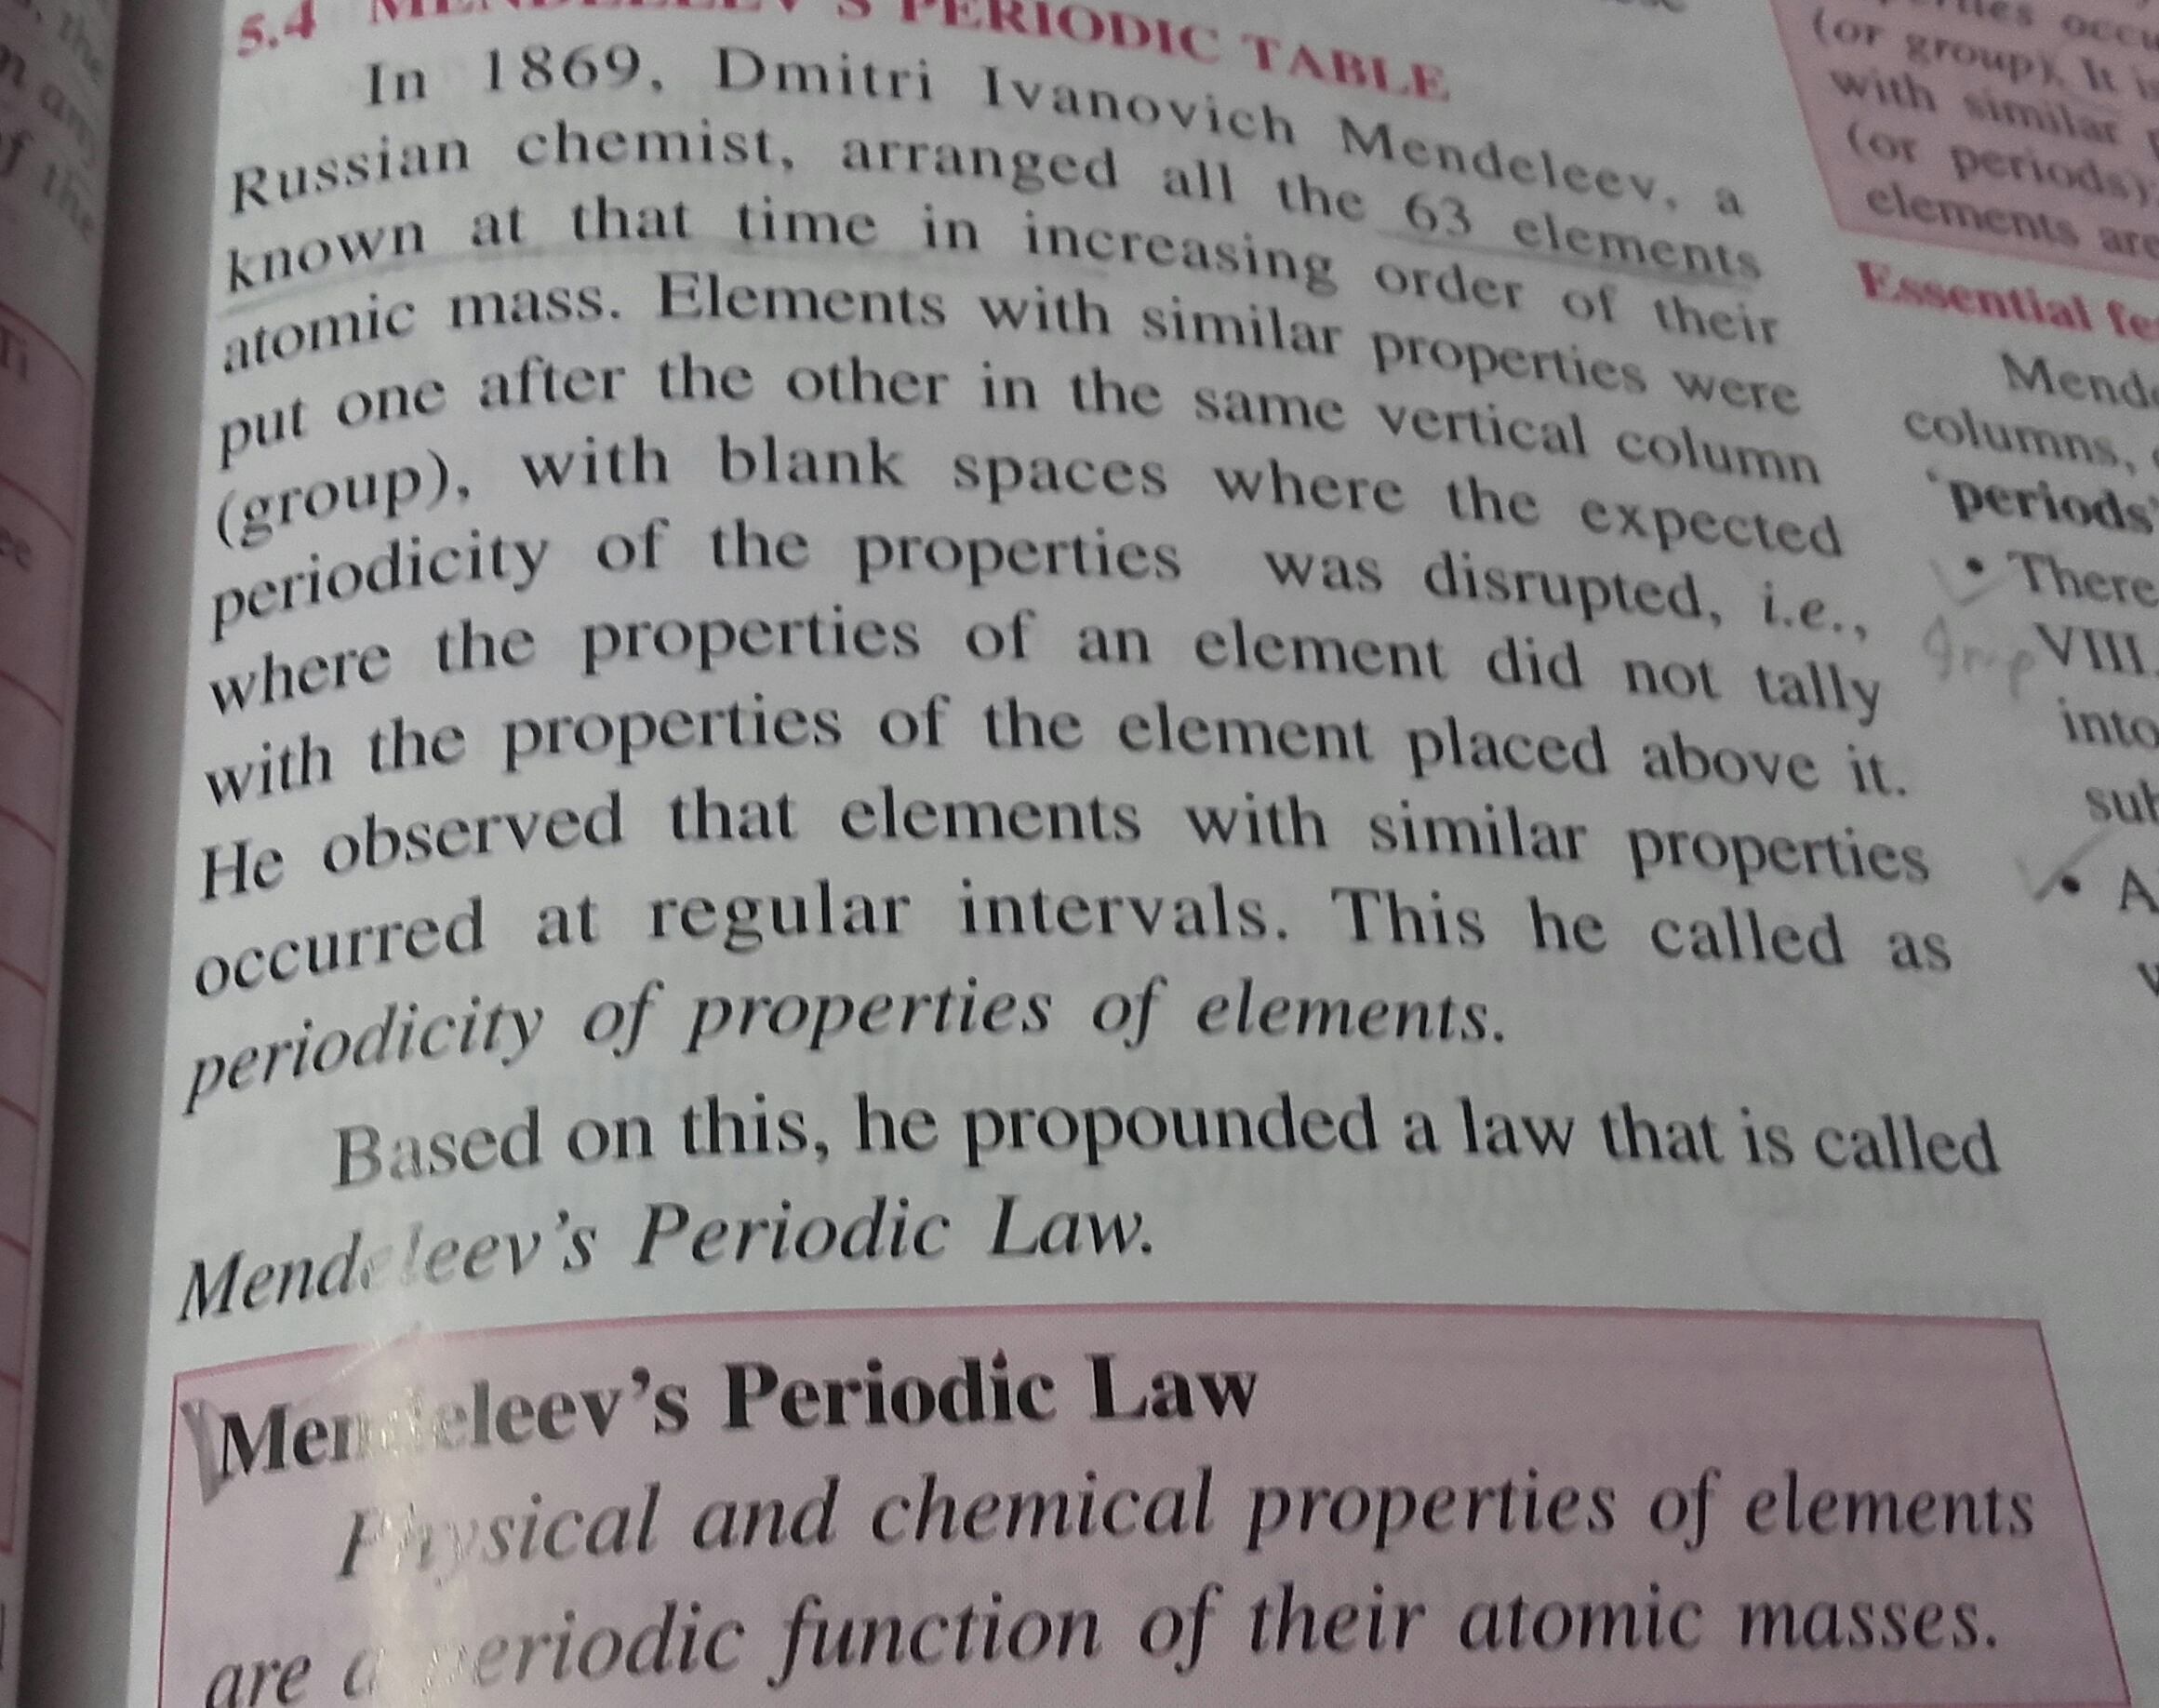 Which 2 Criteria Did Mendeleev Used To Classify Elements In His Periodic Table